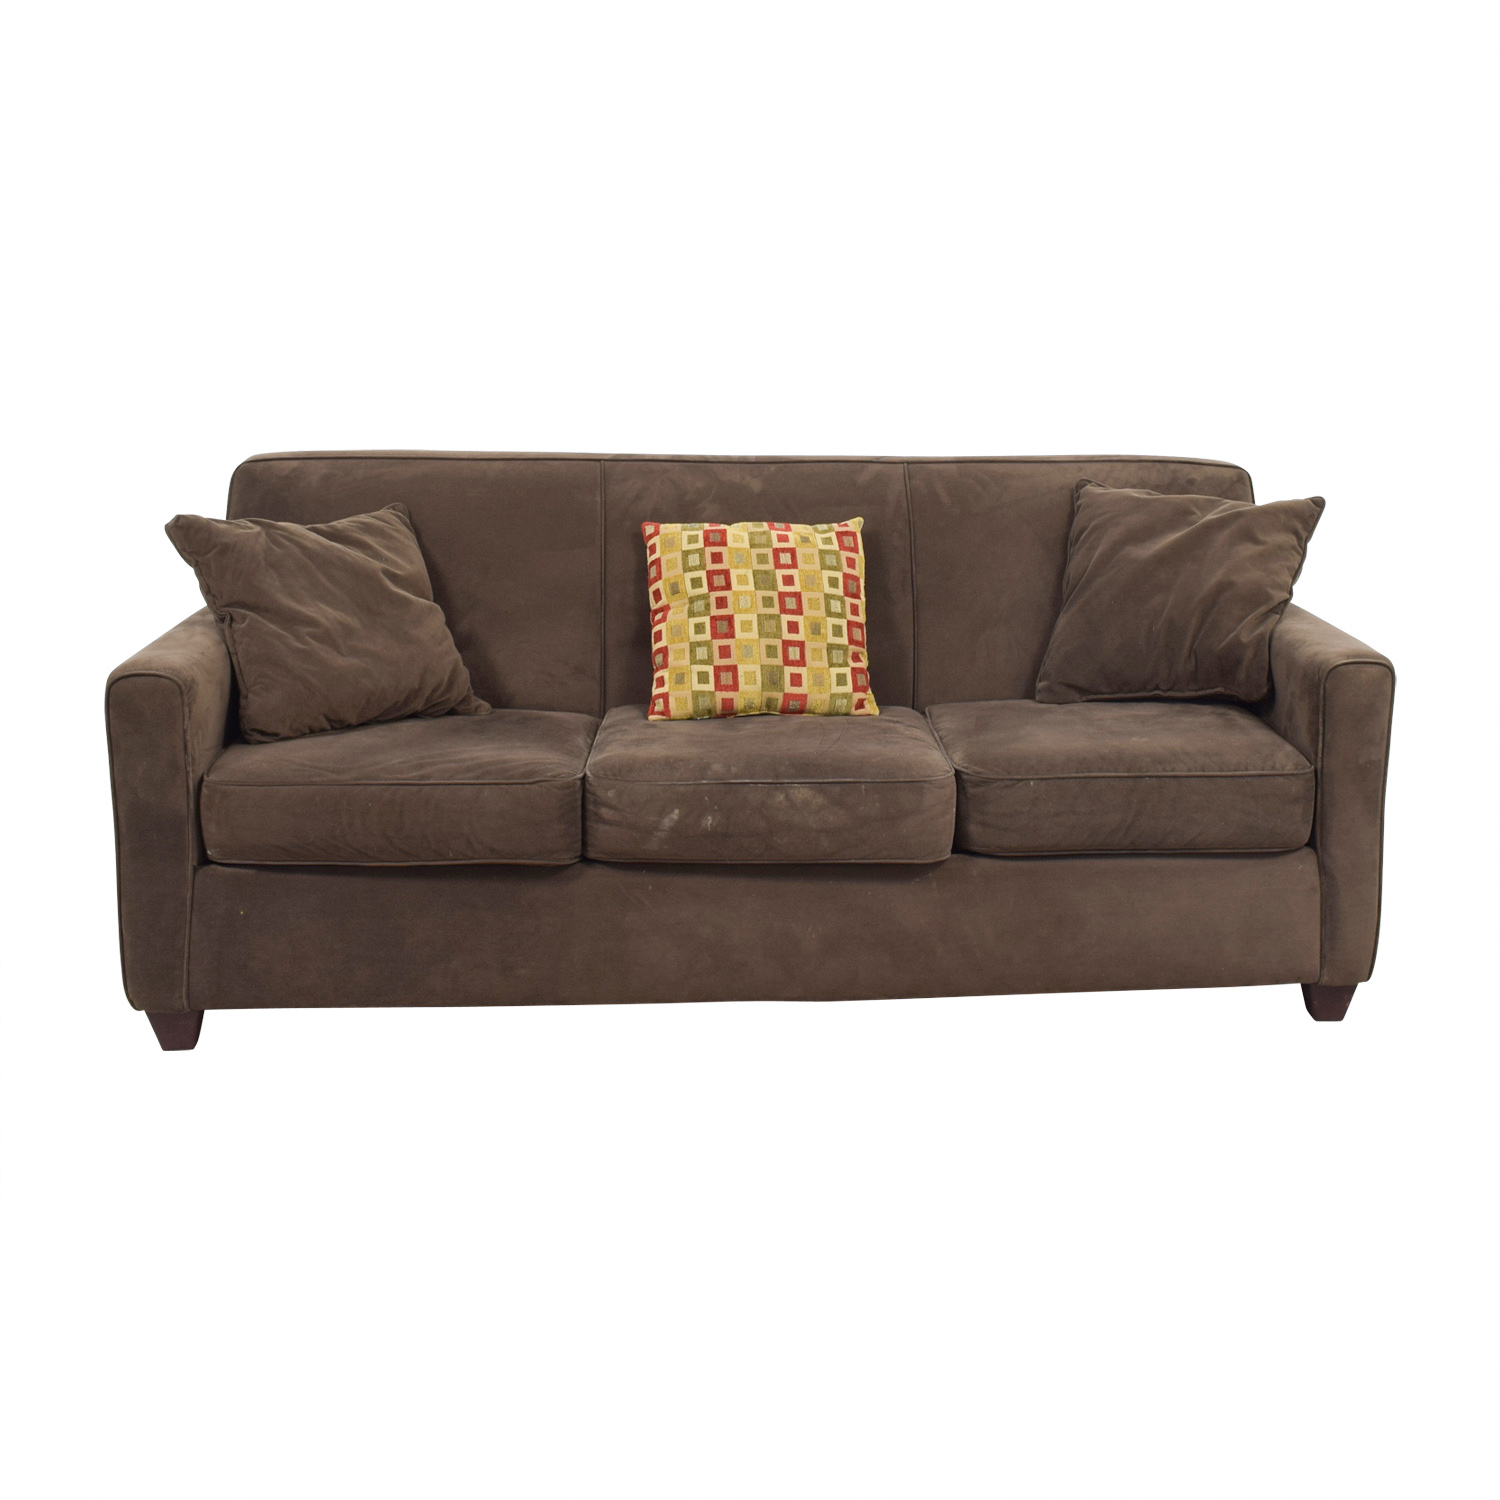 buy Raymour & Flanigan Brown Three-Cushion Sofa Raymour & Flanigan Classic Sofas